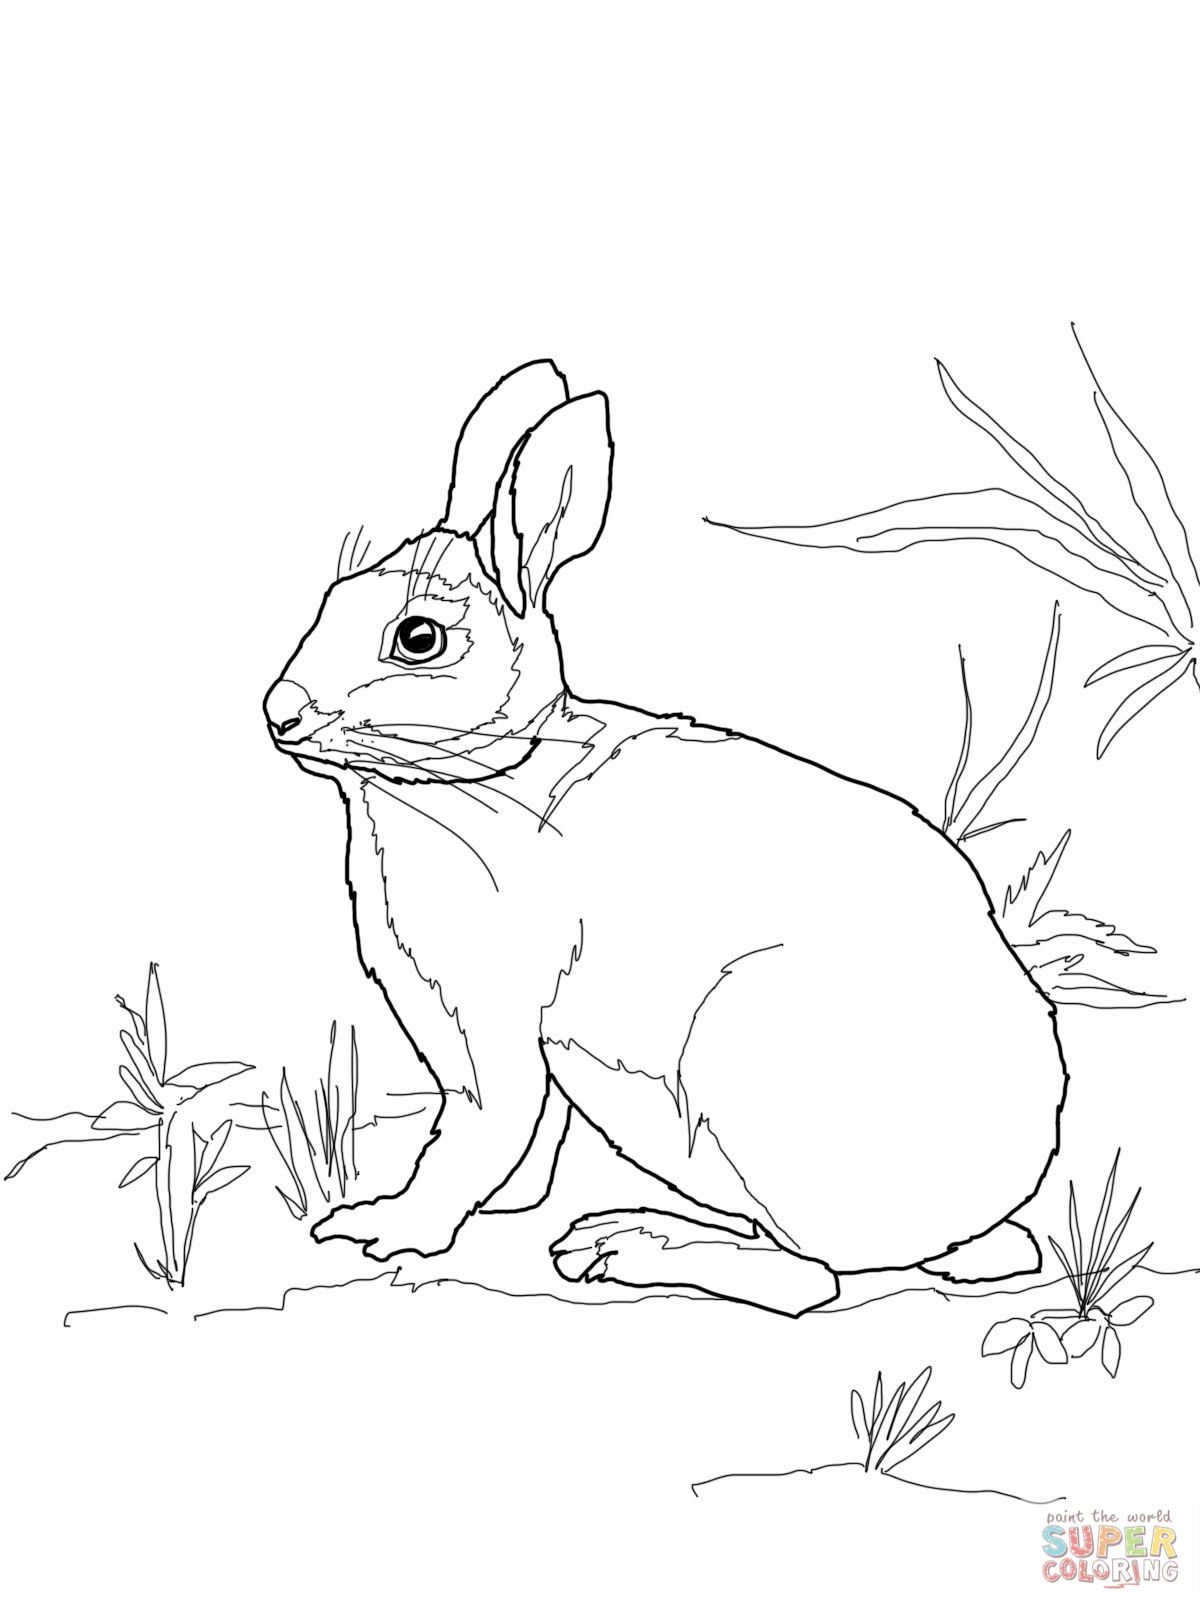 Pin By Susan Duhs On Mosaic Super Coloring Pages Coloring Pages Rabbit Colors